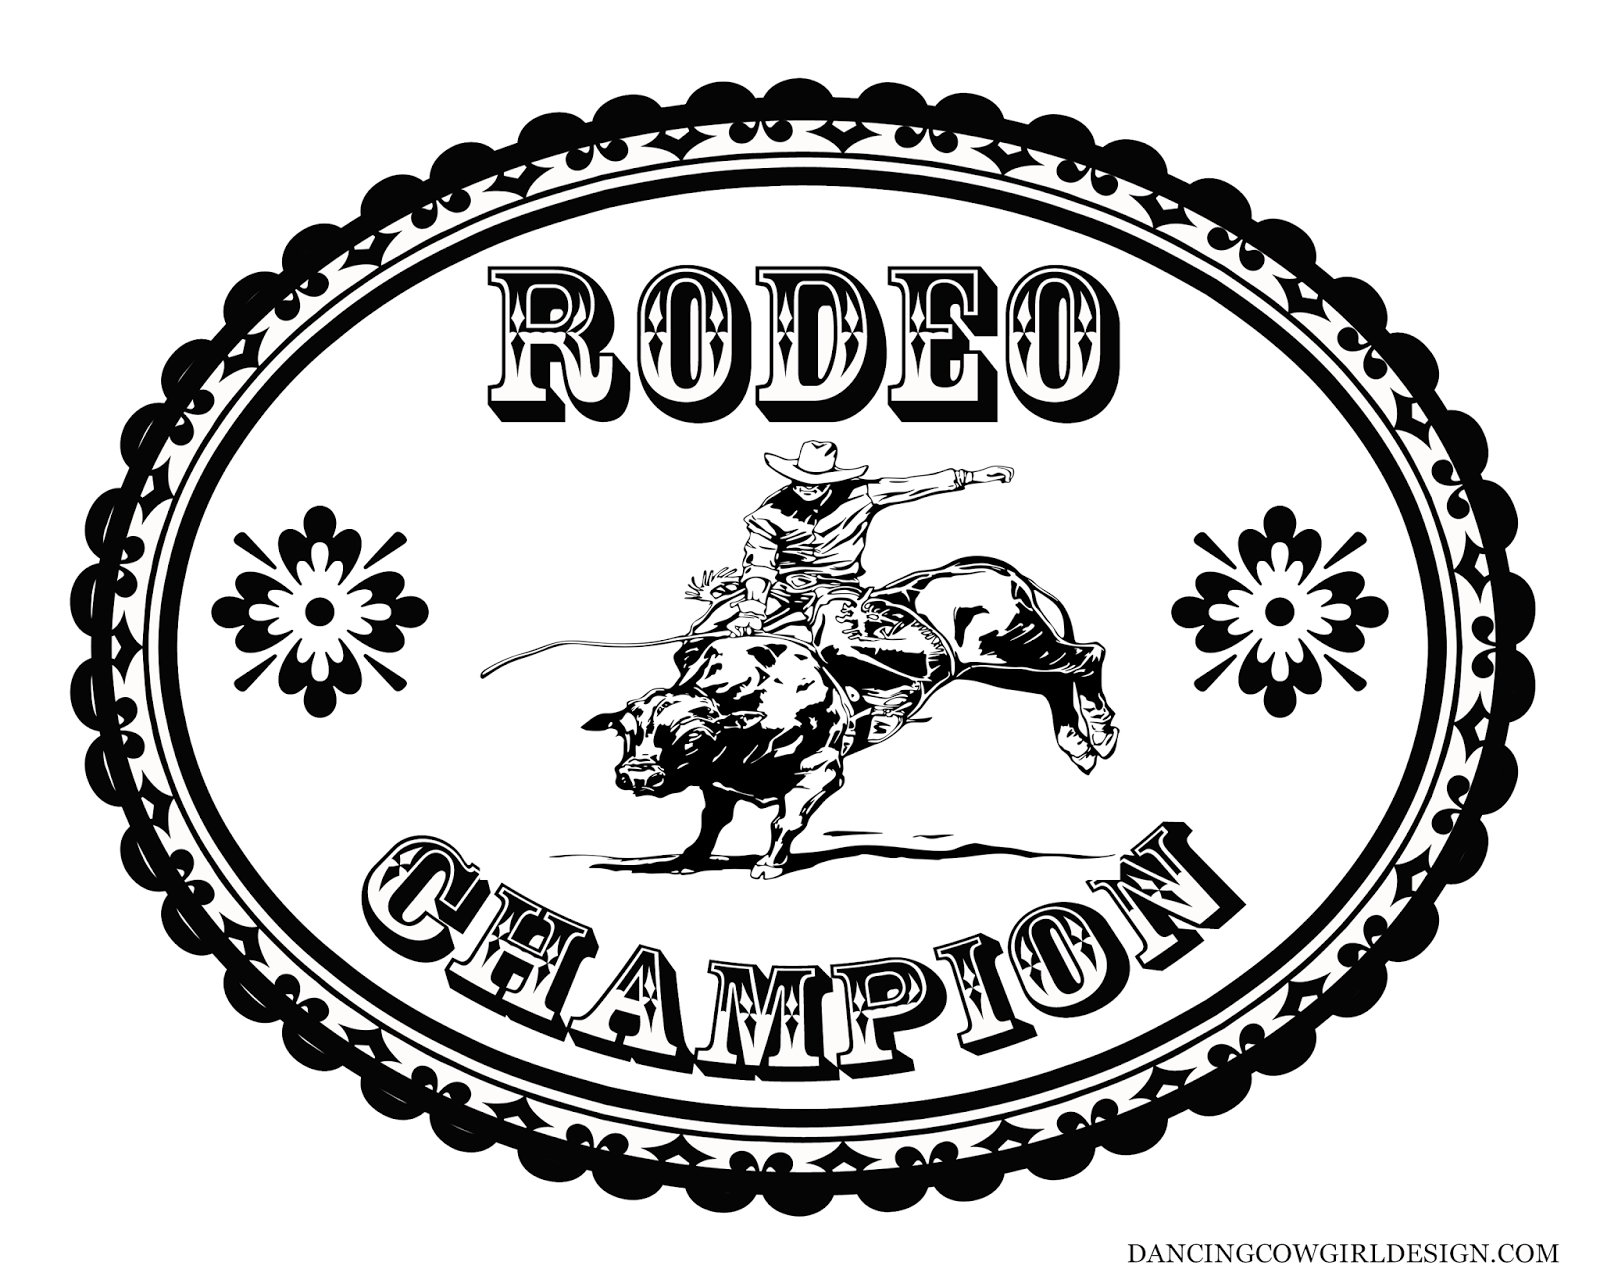 RODEO COLORING PAGES: Coloring Sheet Cowboy Rodeo Bull Rider ...